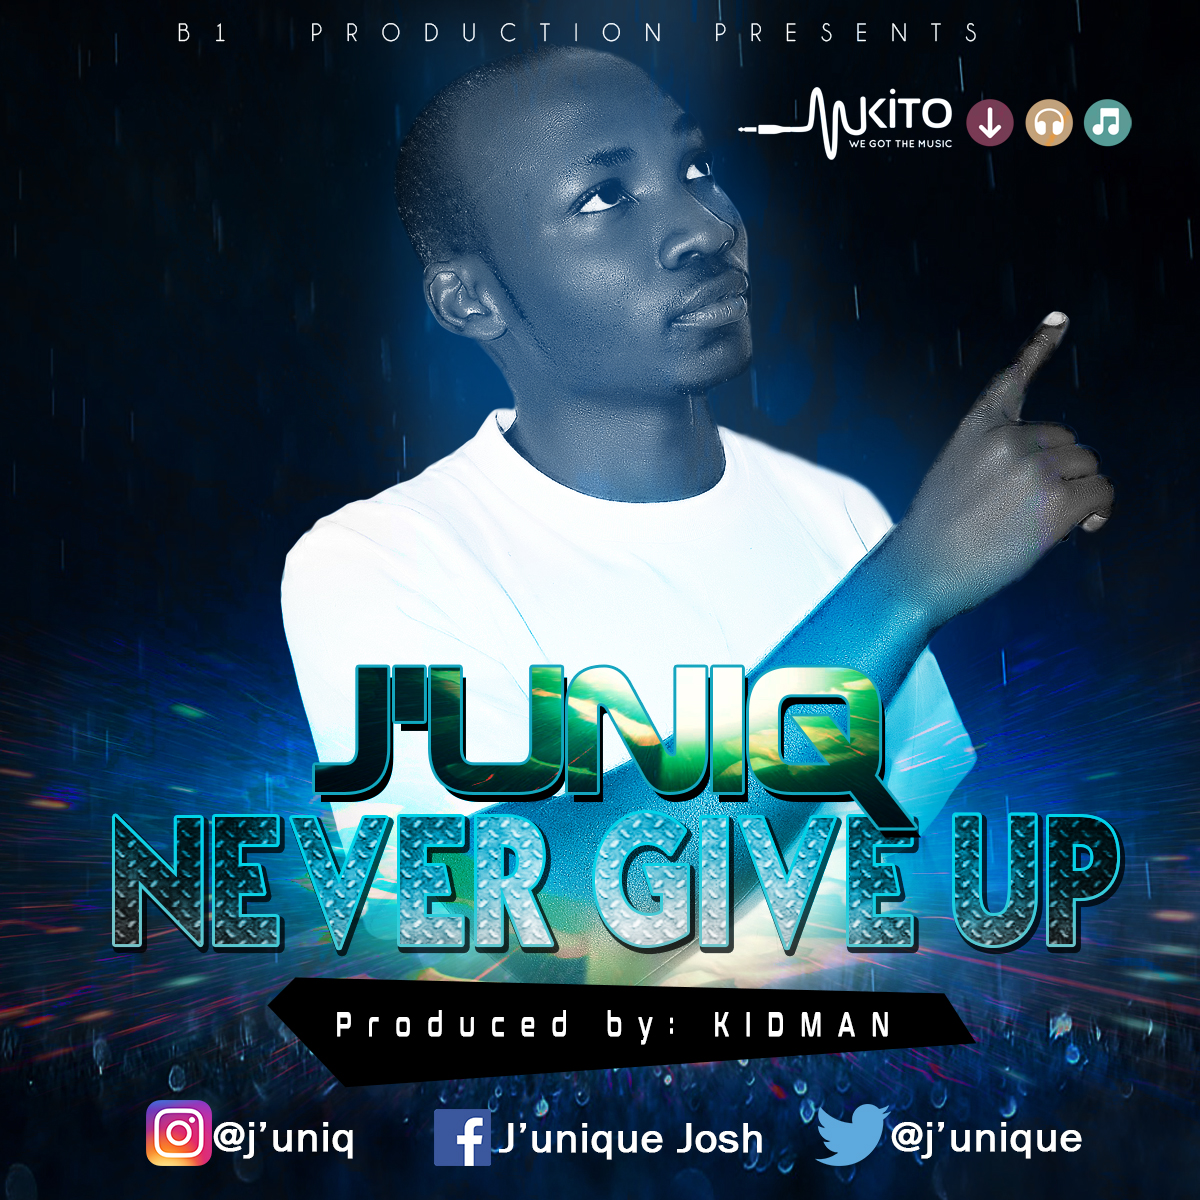 J'uniq -  j'uniq-never give up